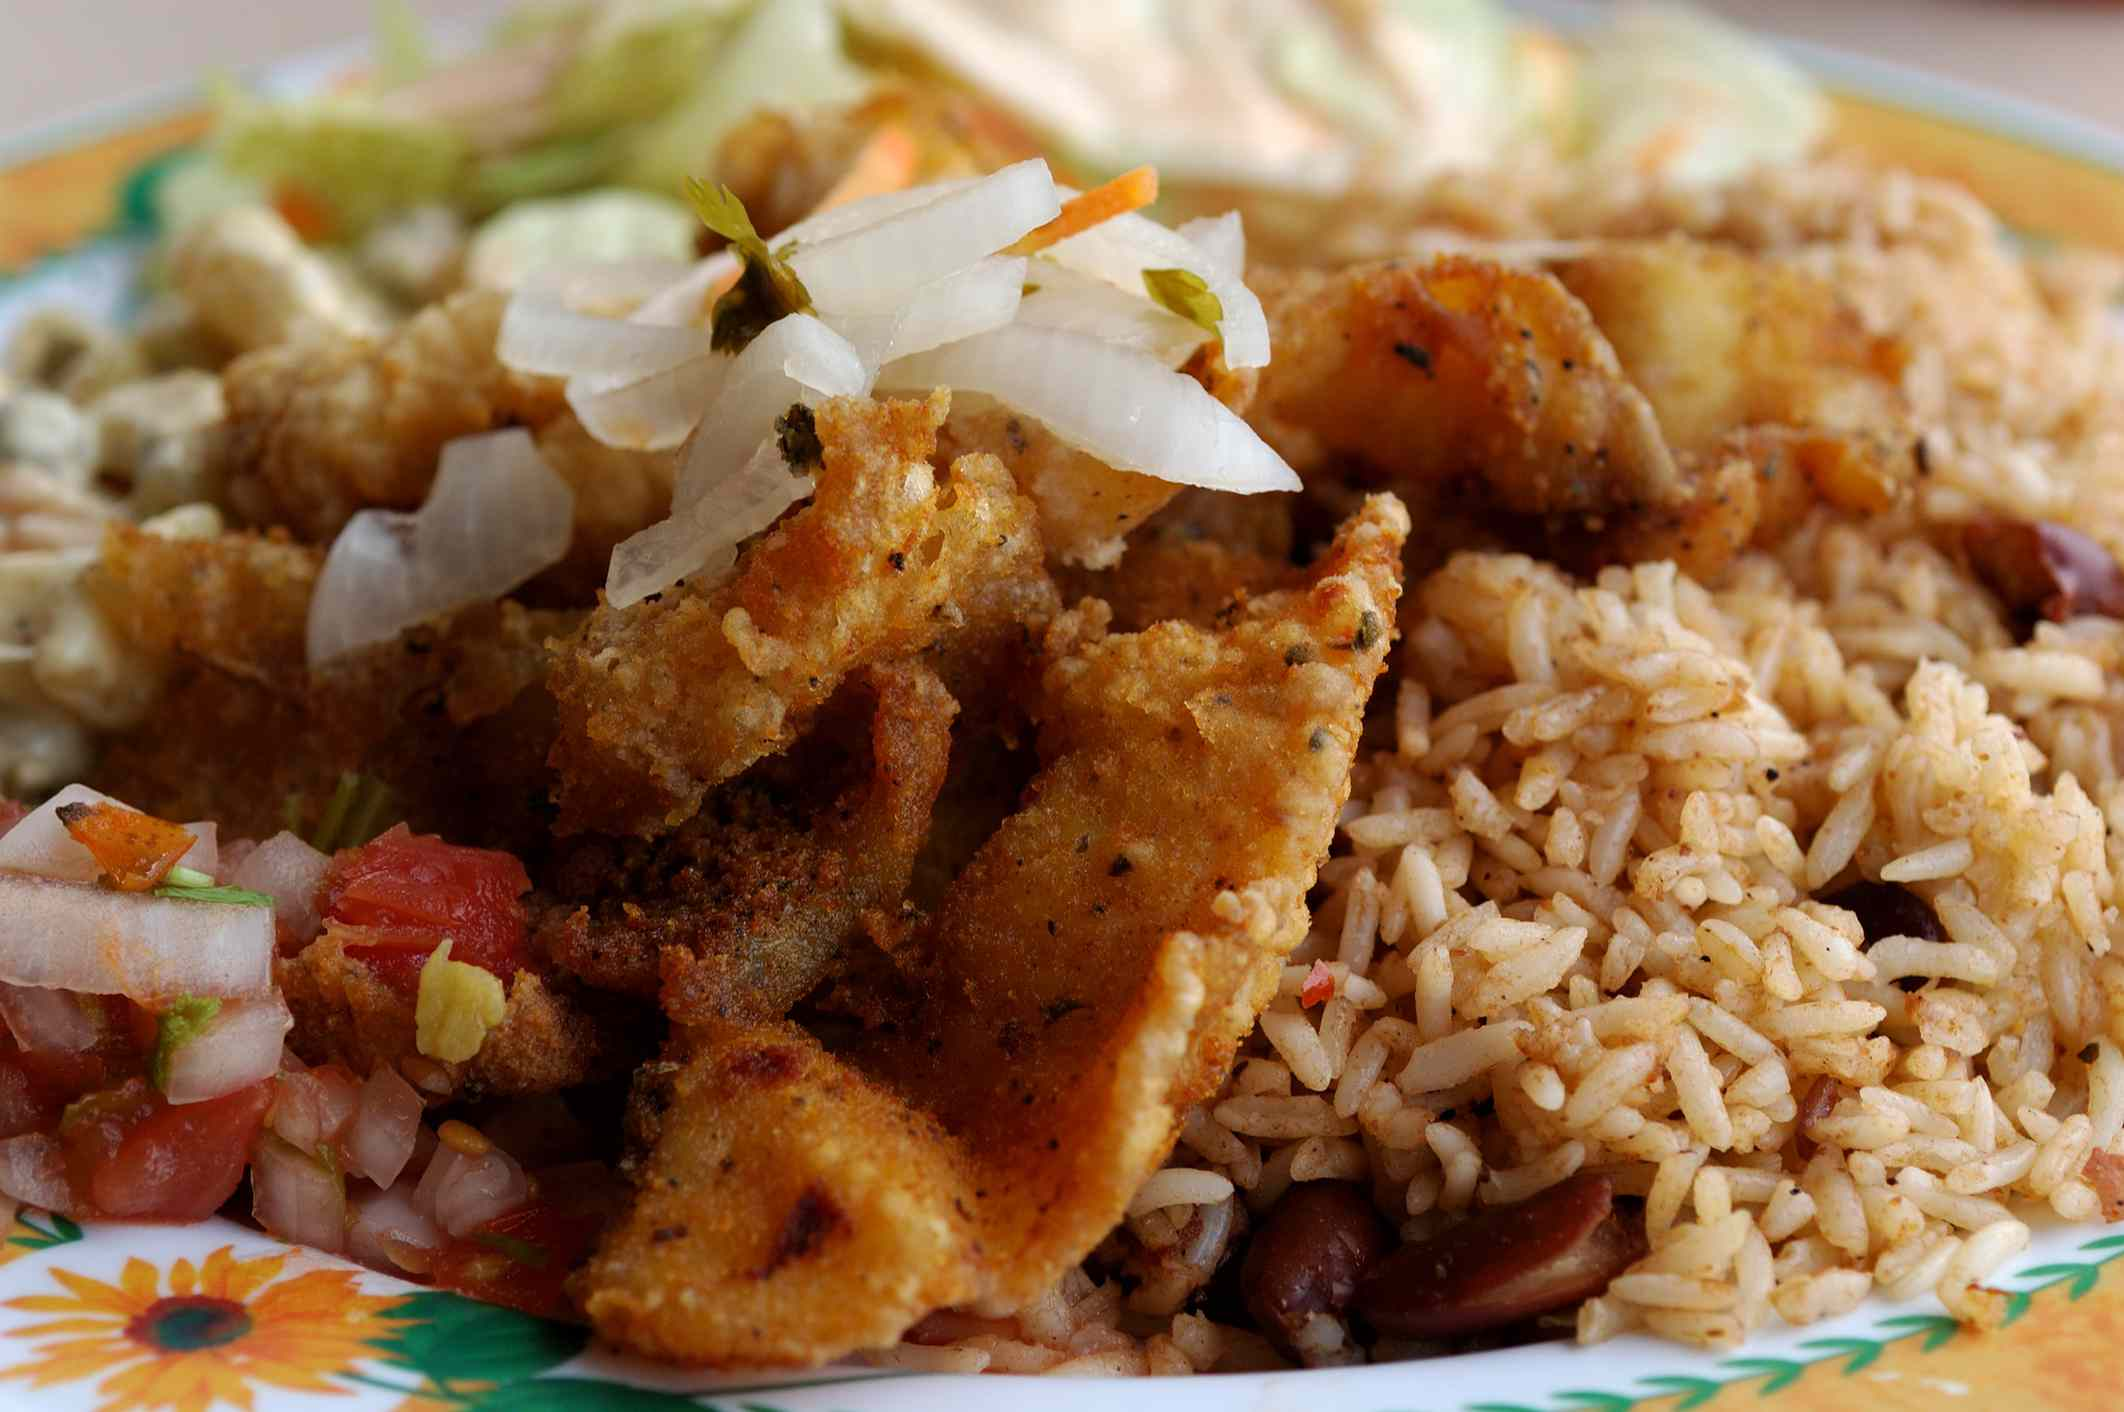 Rice and beans with fried fish fillets and salsa salad